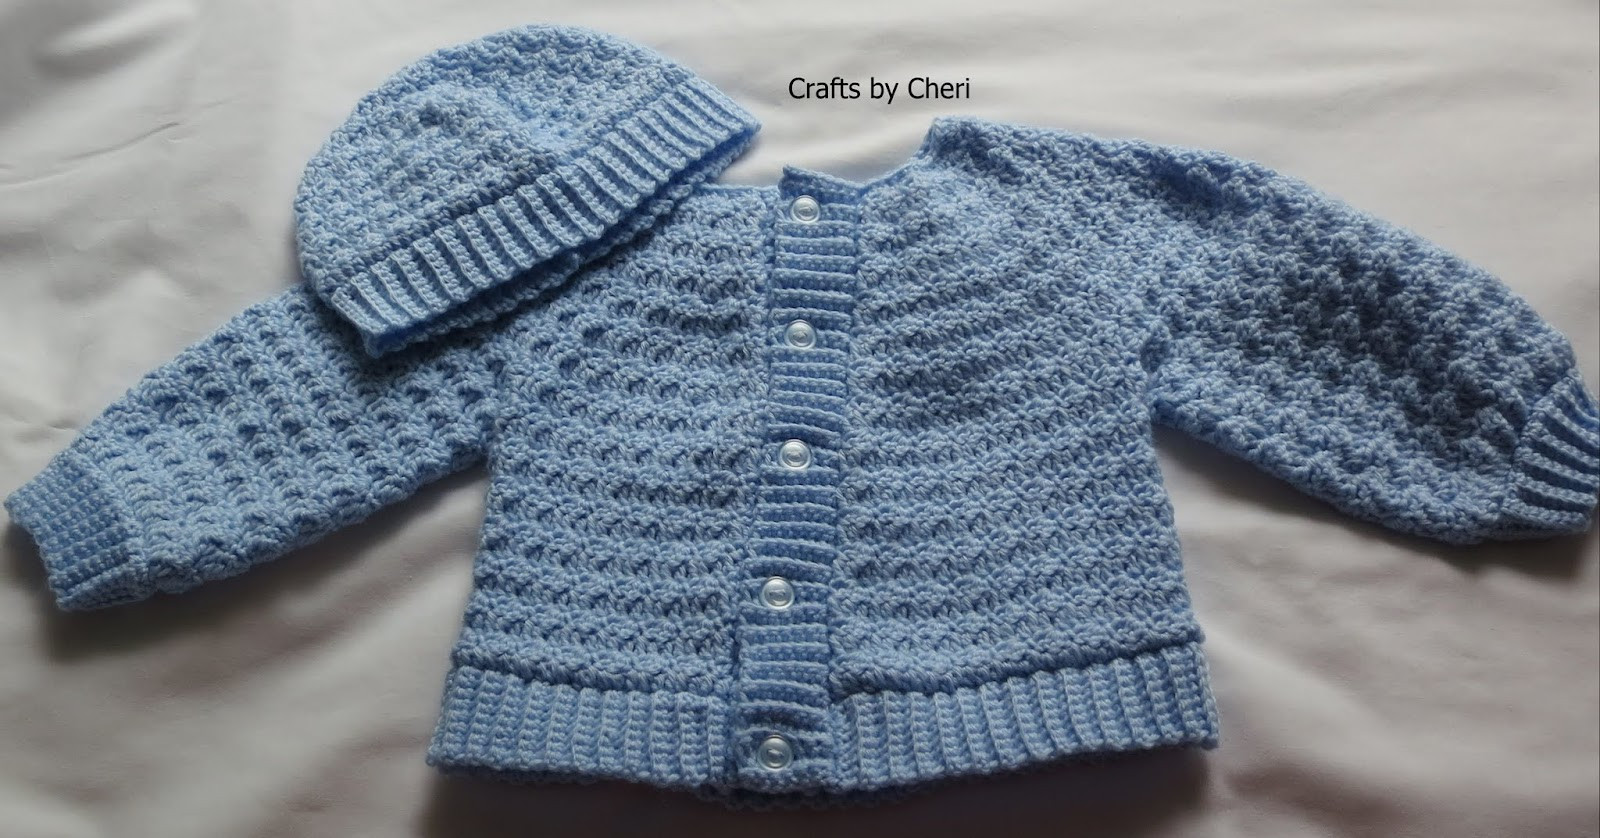 Crochet Clothing Pattern Unique Baby Boy Sweaters Patterns Of Delightful 41 Pics Crochet Clothing Pattern